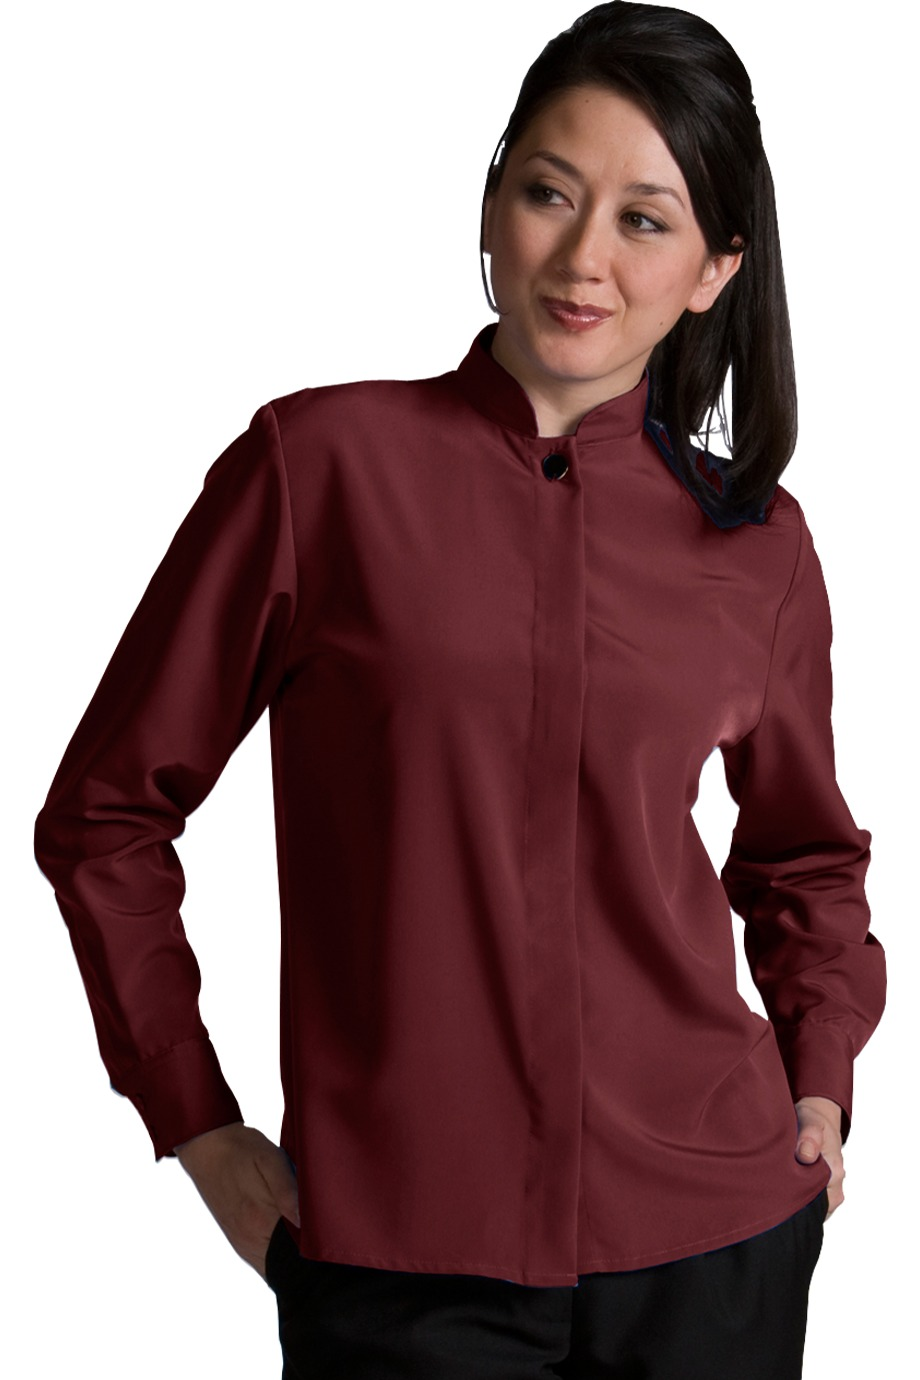 Edwards Garment 5397 - Women's Casino Shirt